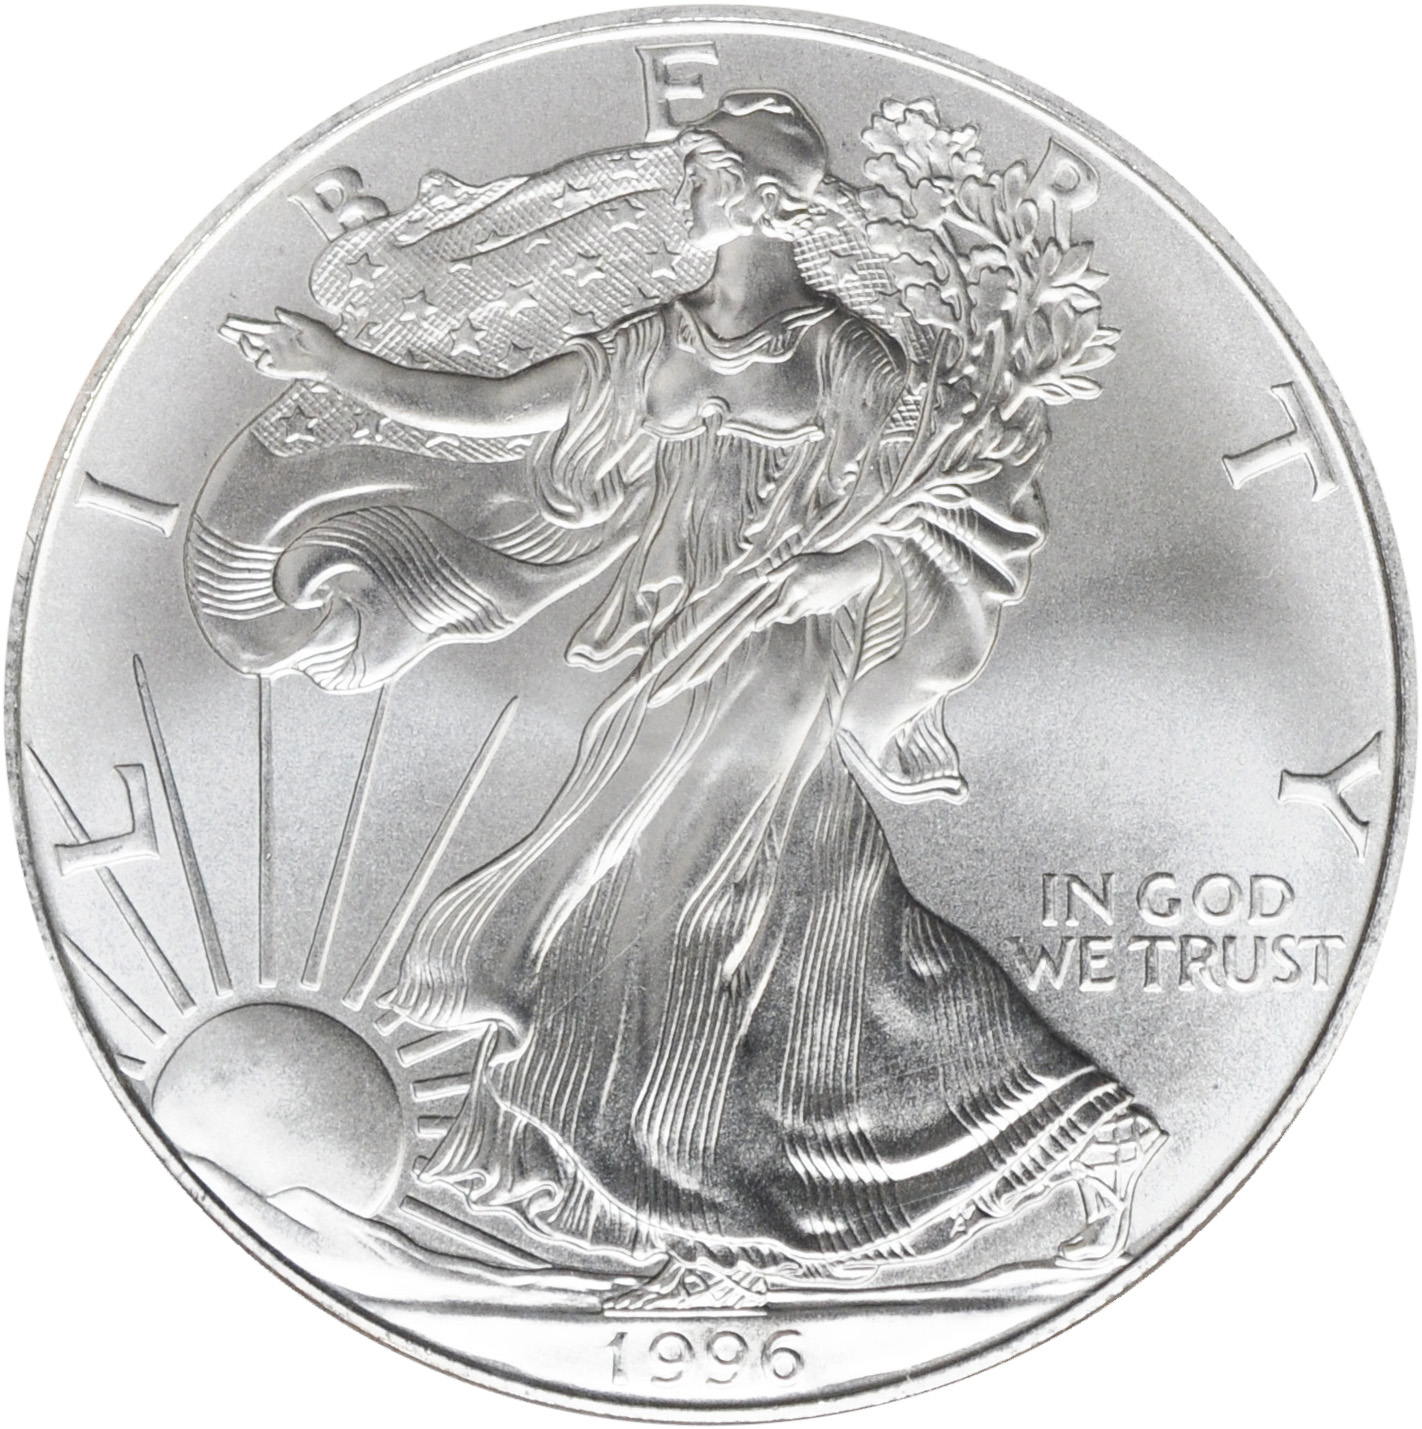 Value Of 1996 $1 Silver Coin